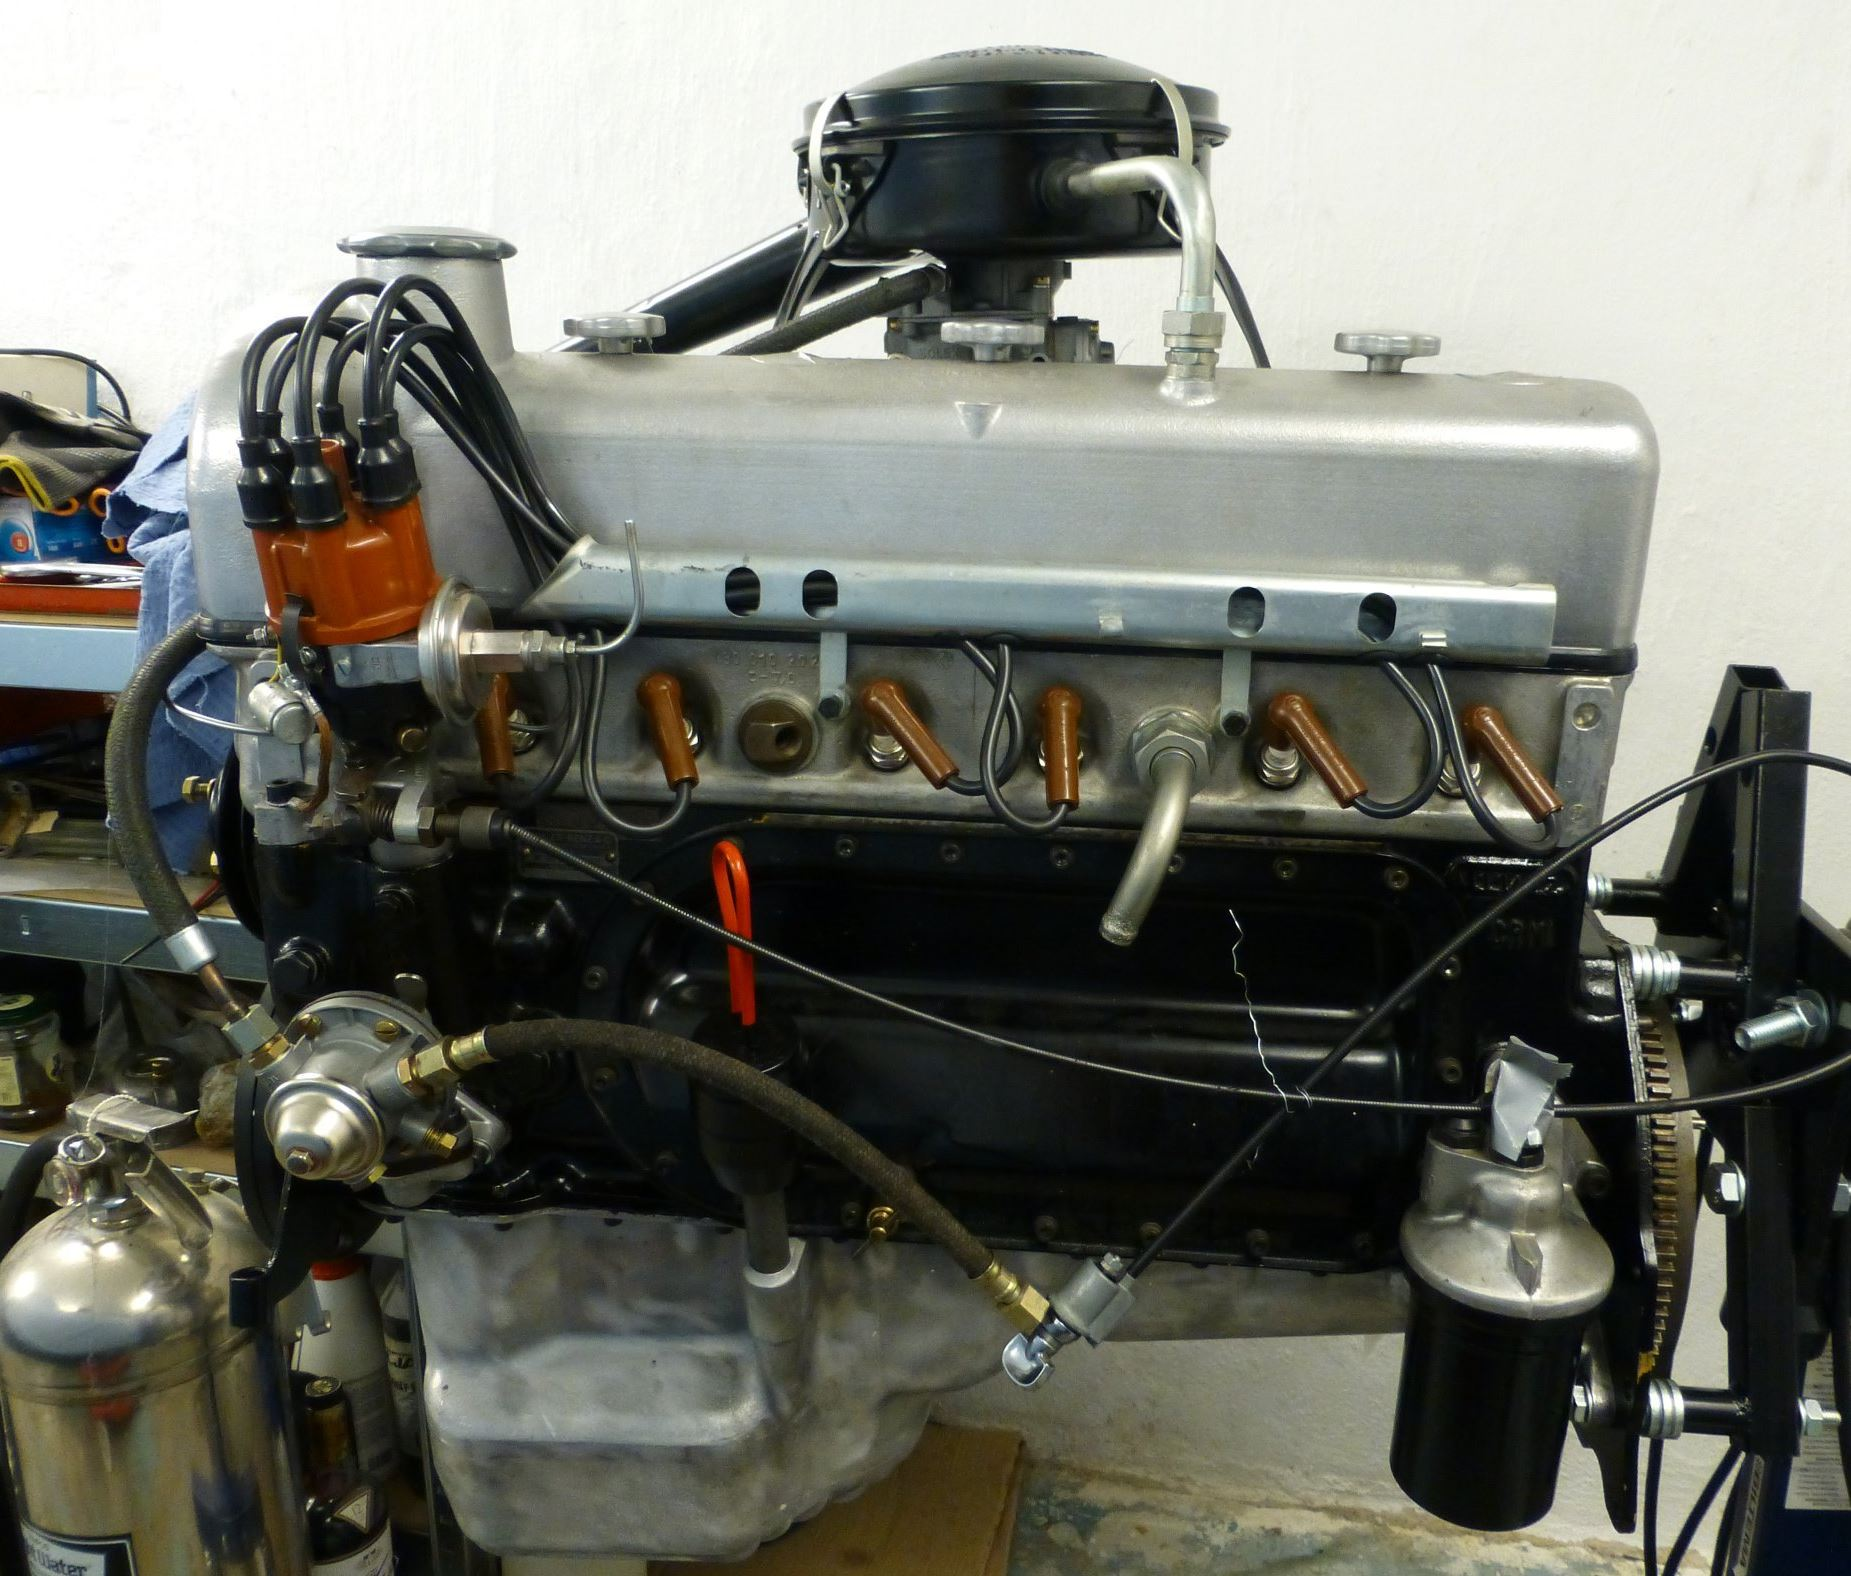 M 180 II engine with distributor and ignition cables